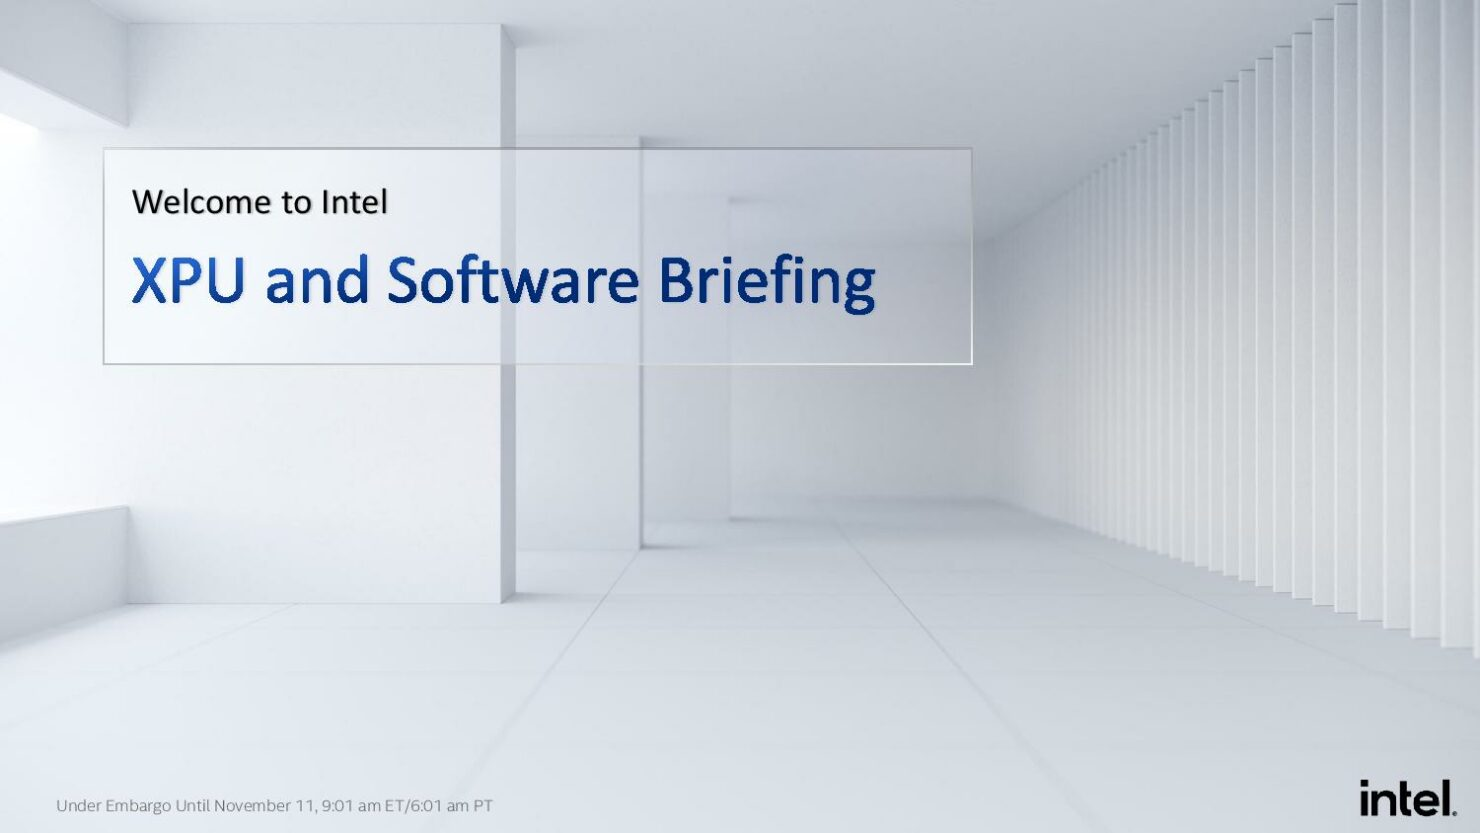 xpu-and-software-briefing-slides-nov-11-6am-pt-page-001